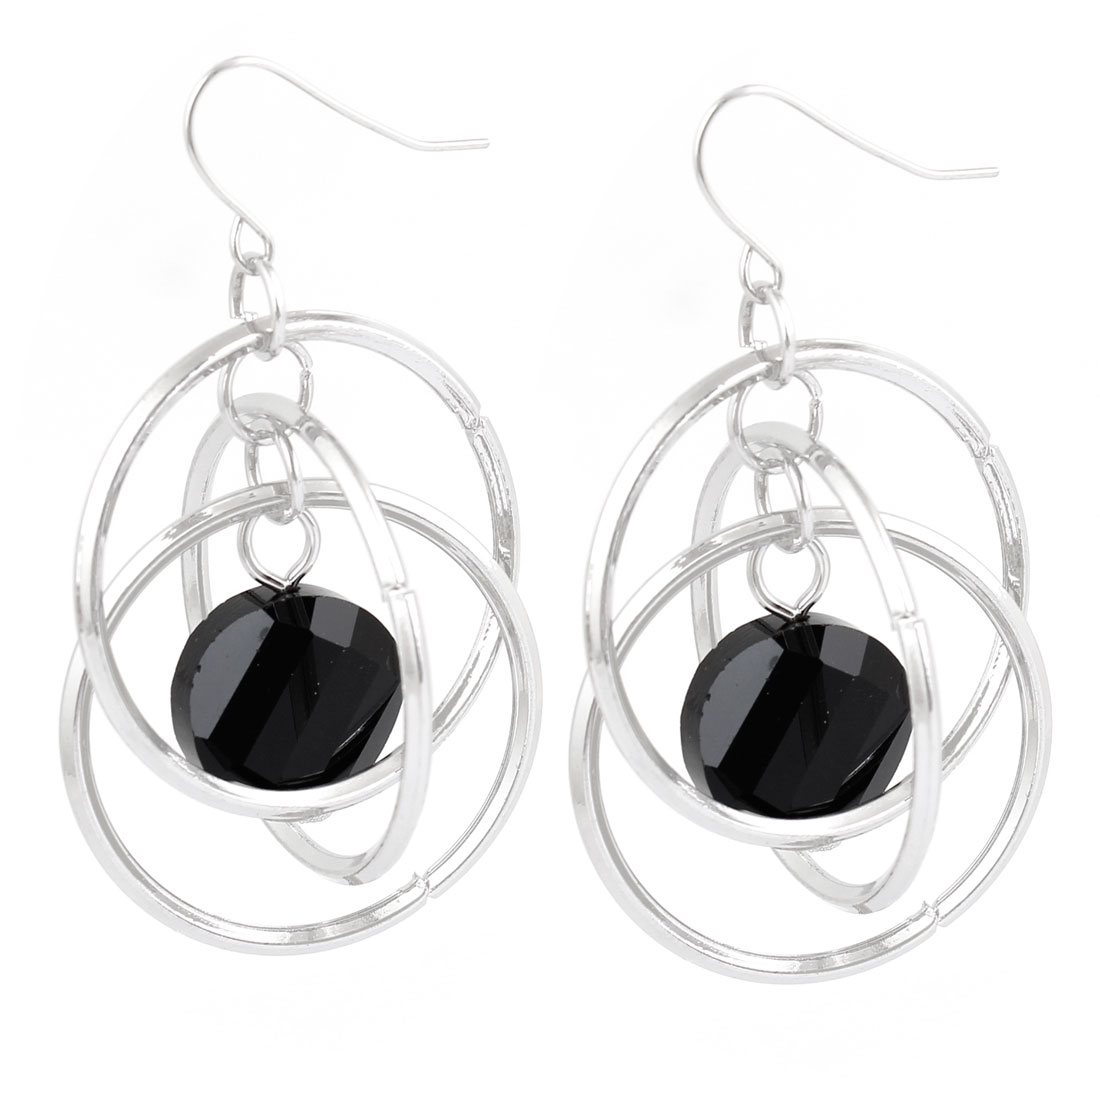 Silver Tone 3 Circles Black Beads Pendant Fish Hook Earrings Pair